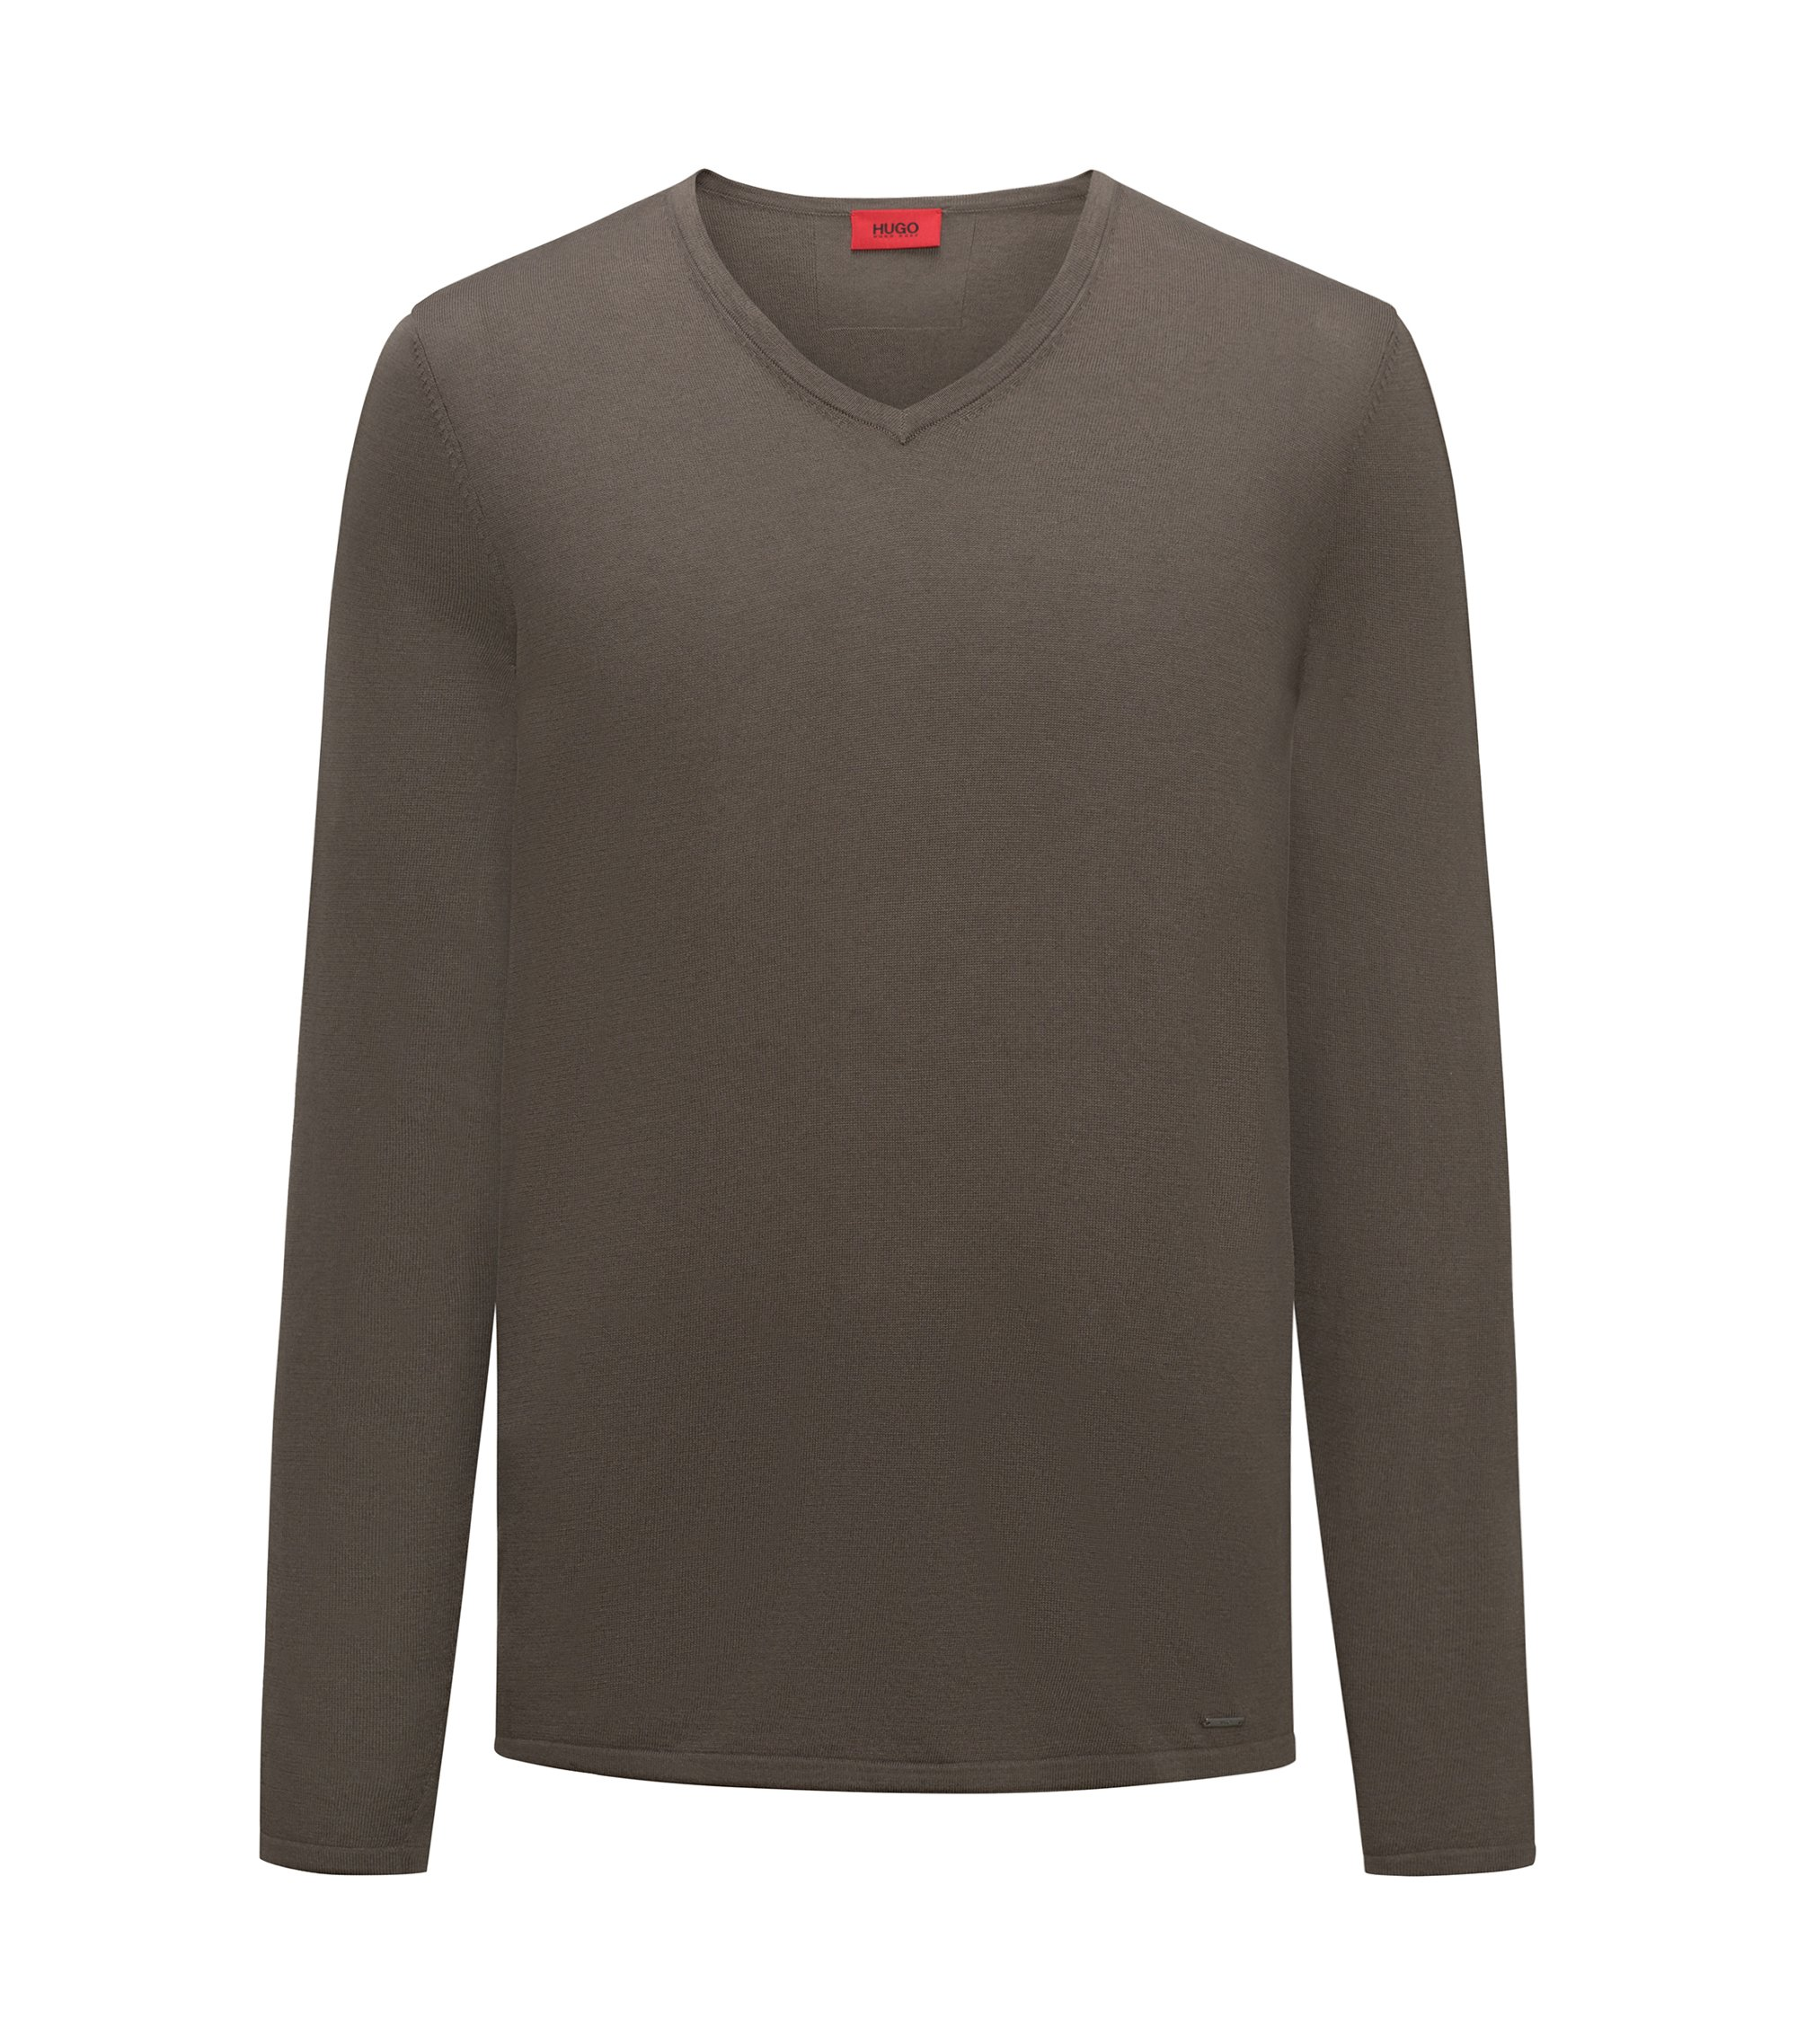 V-neck sweater in a cotton blend, Brown